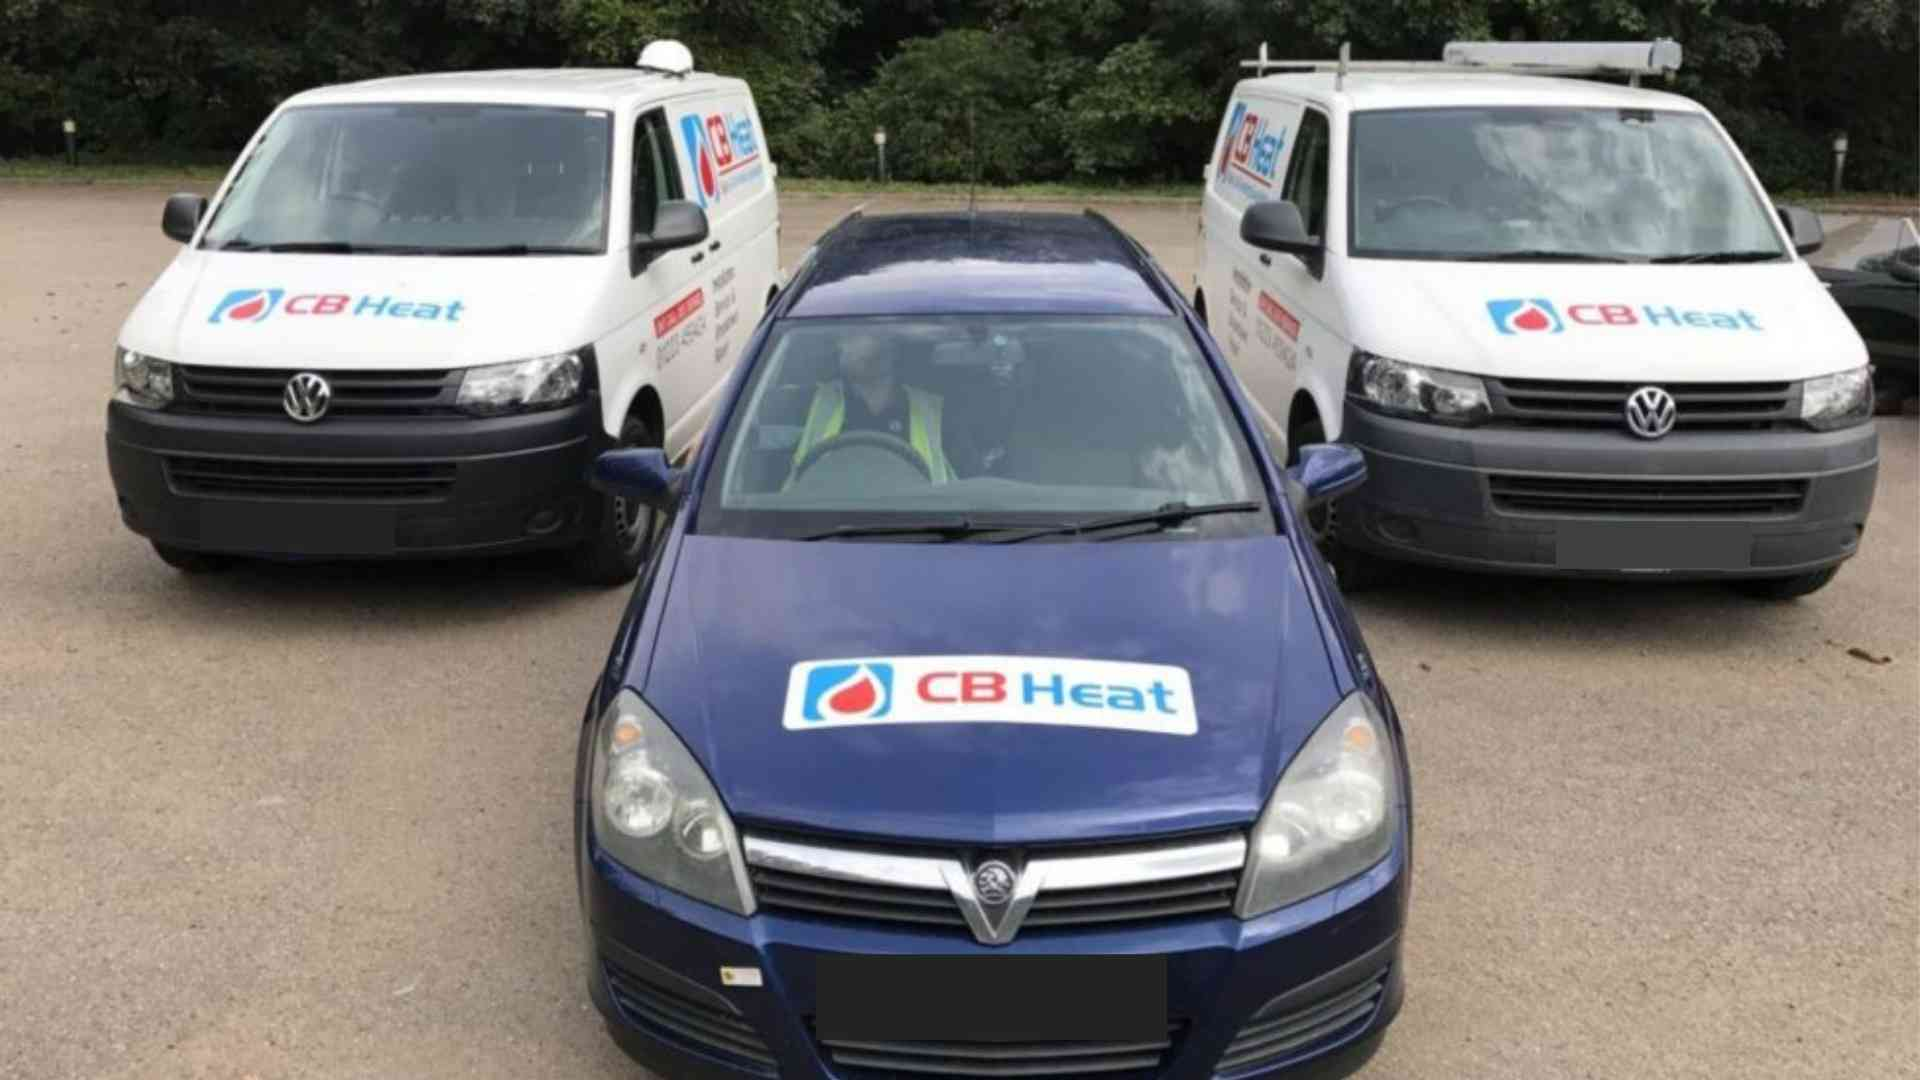 boiler installation and central heating specialists in Cambridge